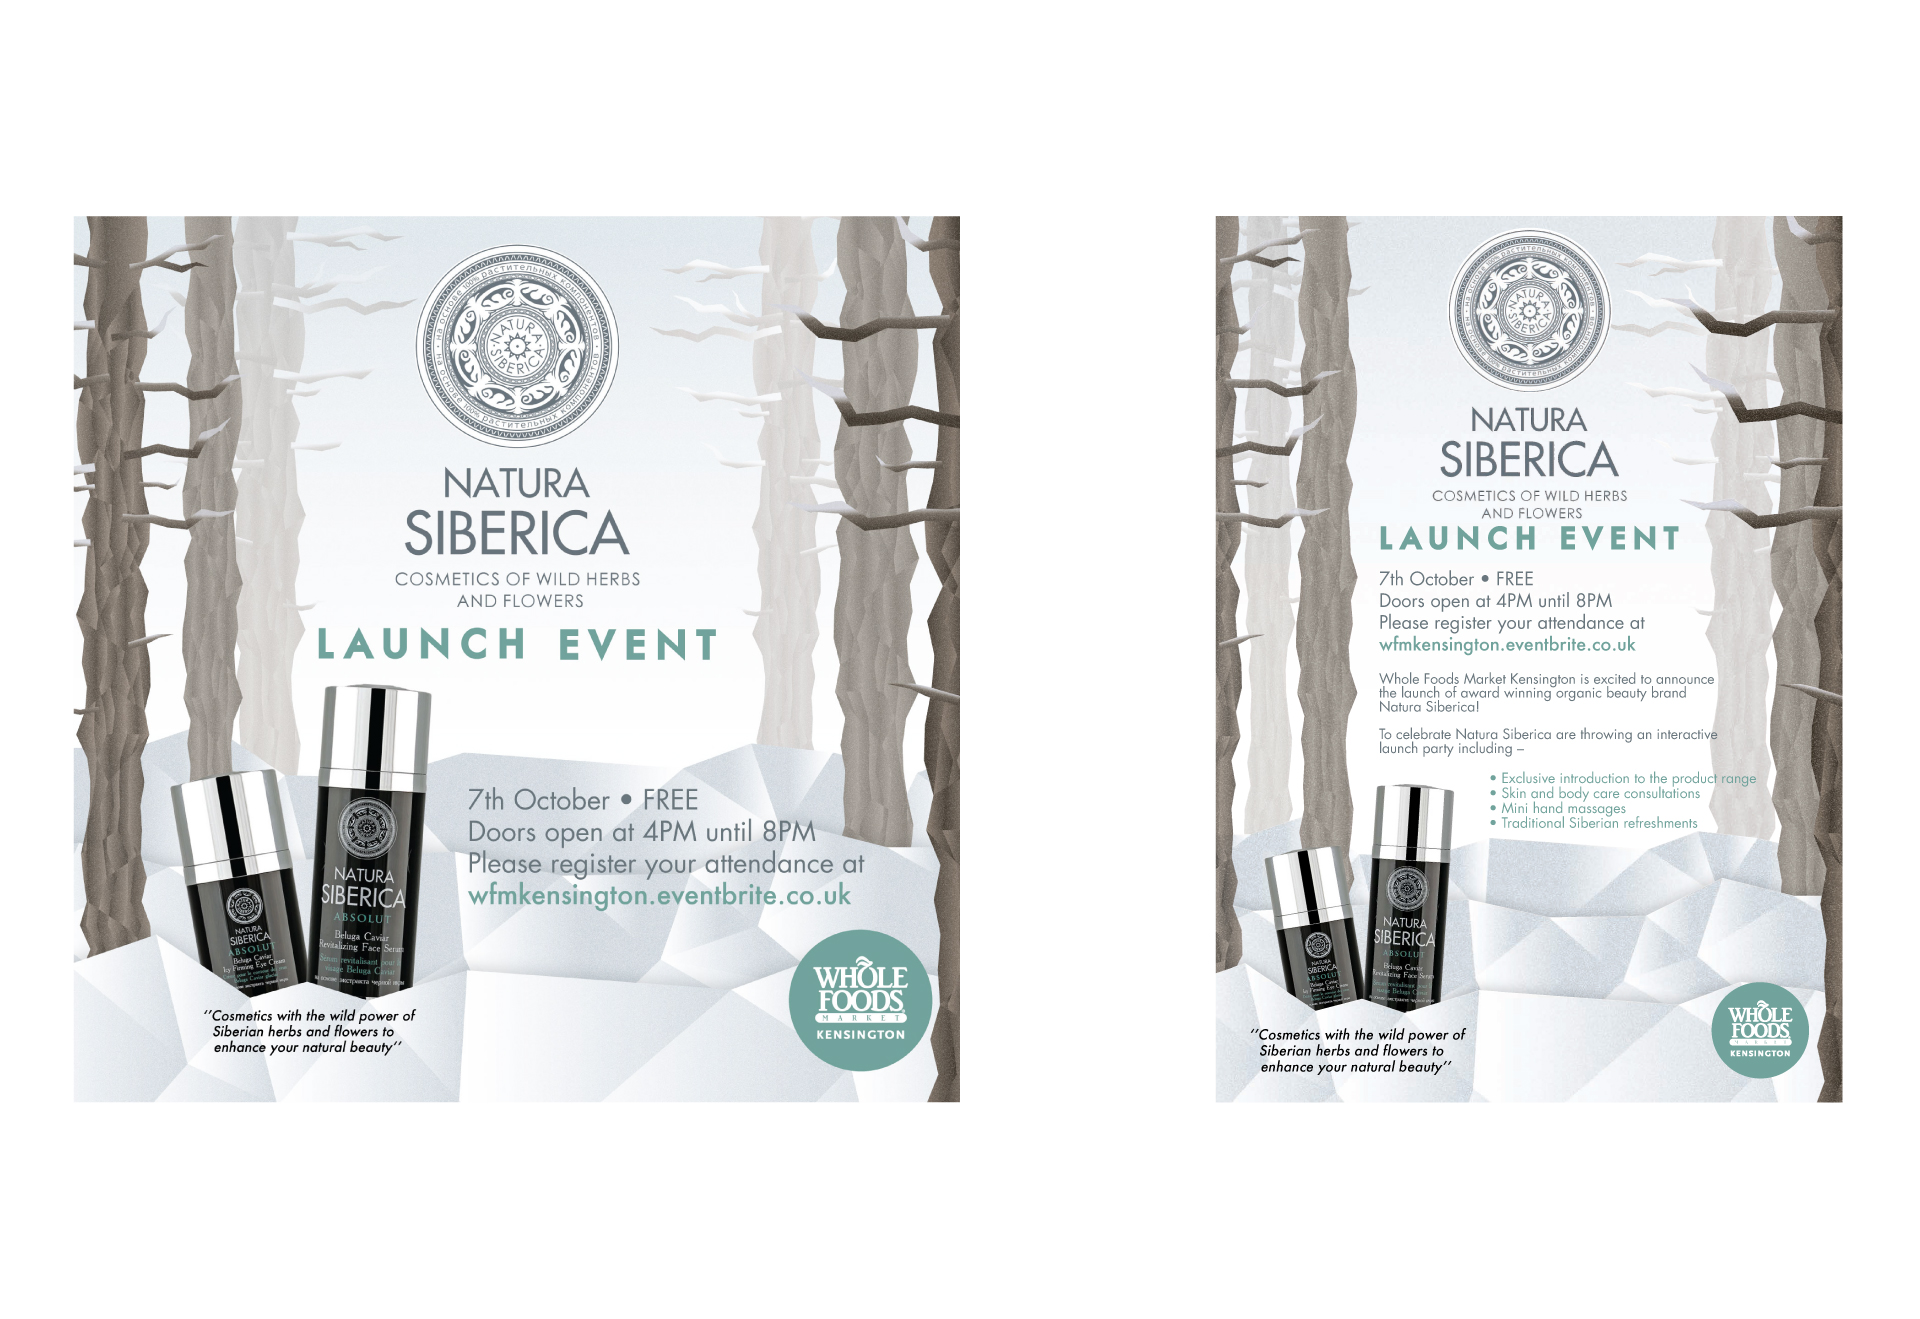 Natura Siberica Product Launch Event